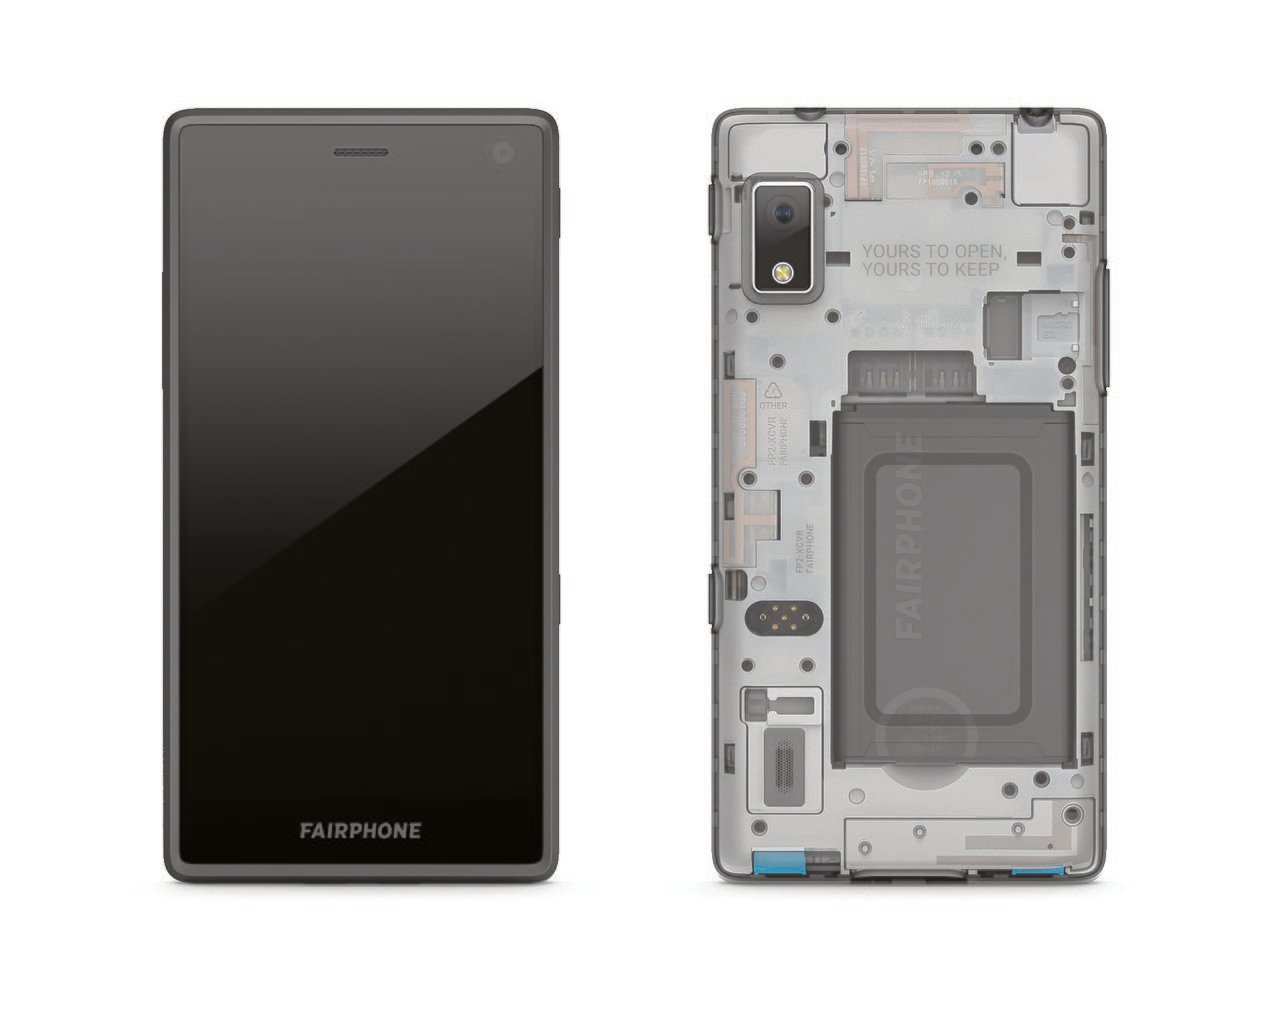 fairphone-2-innenleben